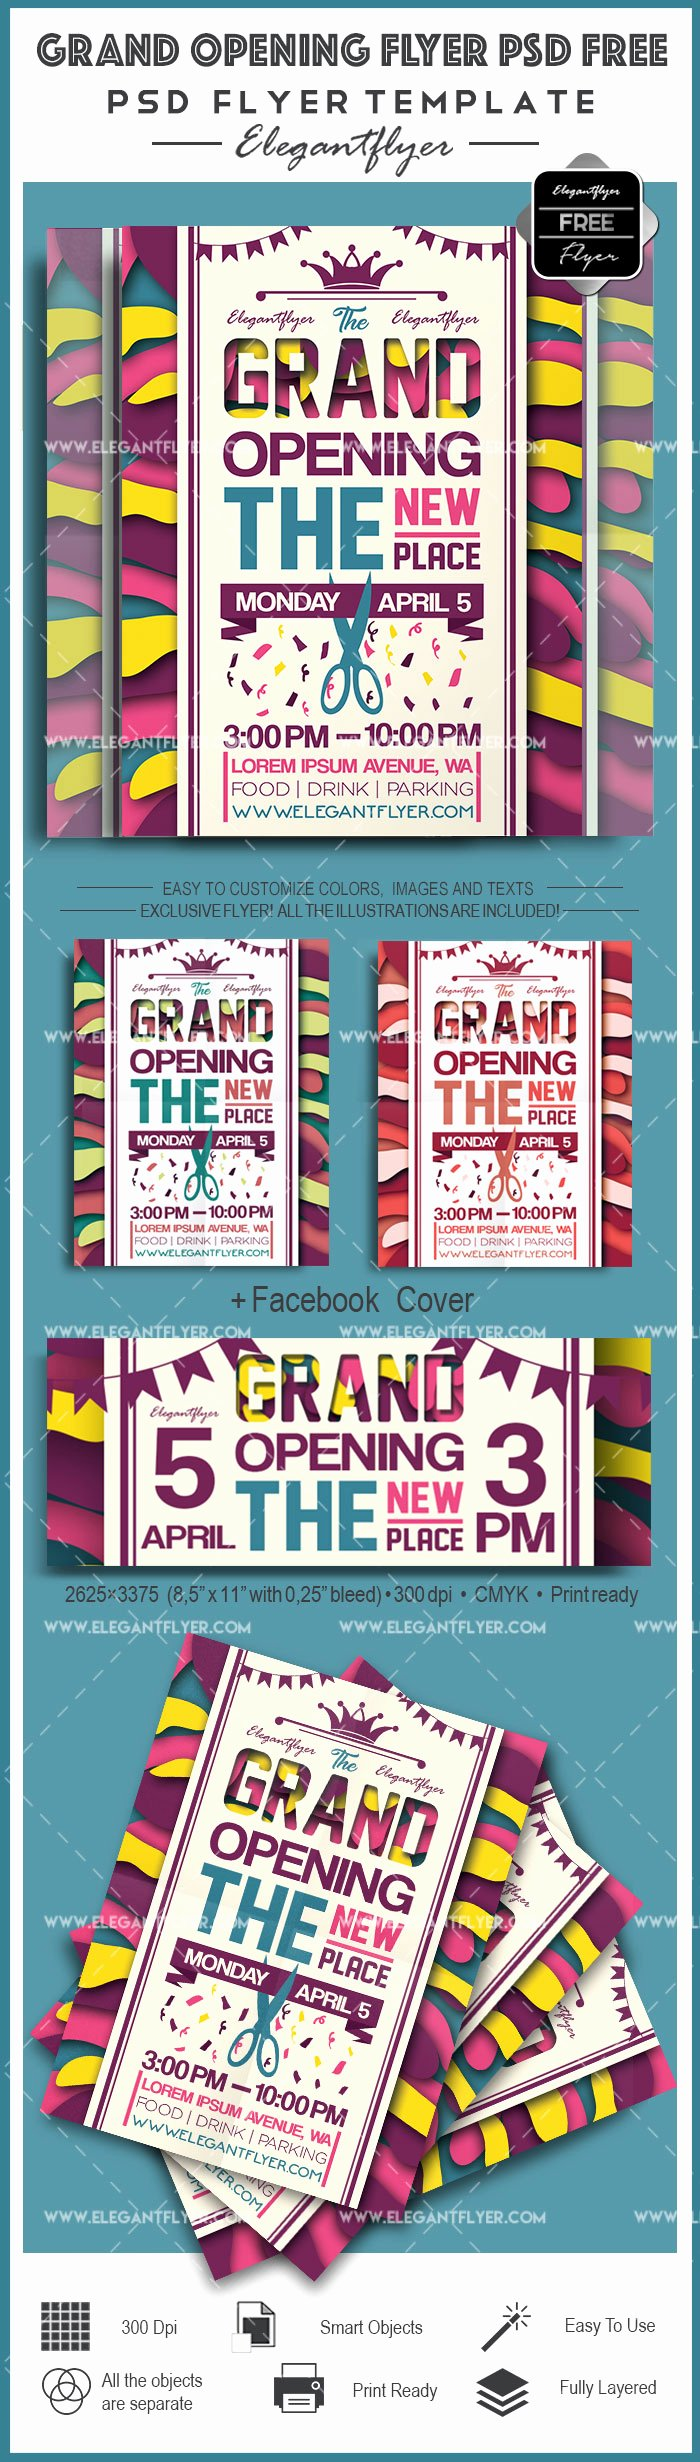 Grand Opening Flyer Template Luxury Grand Opening Flyer Psd Template – by Elegantflyer